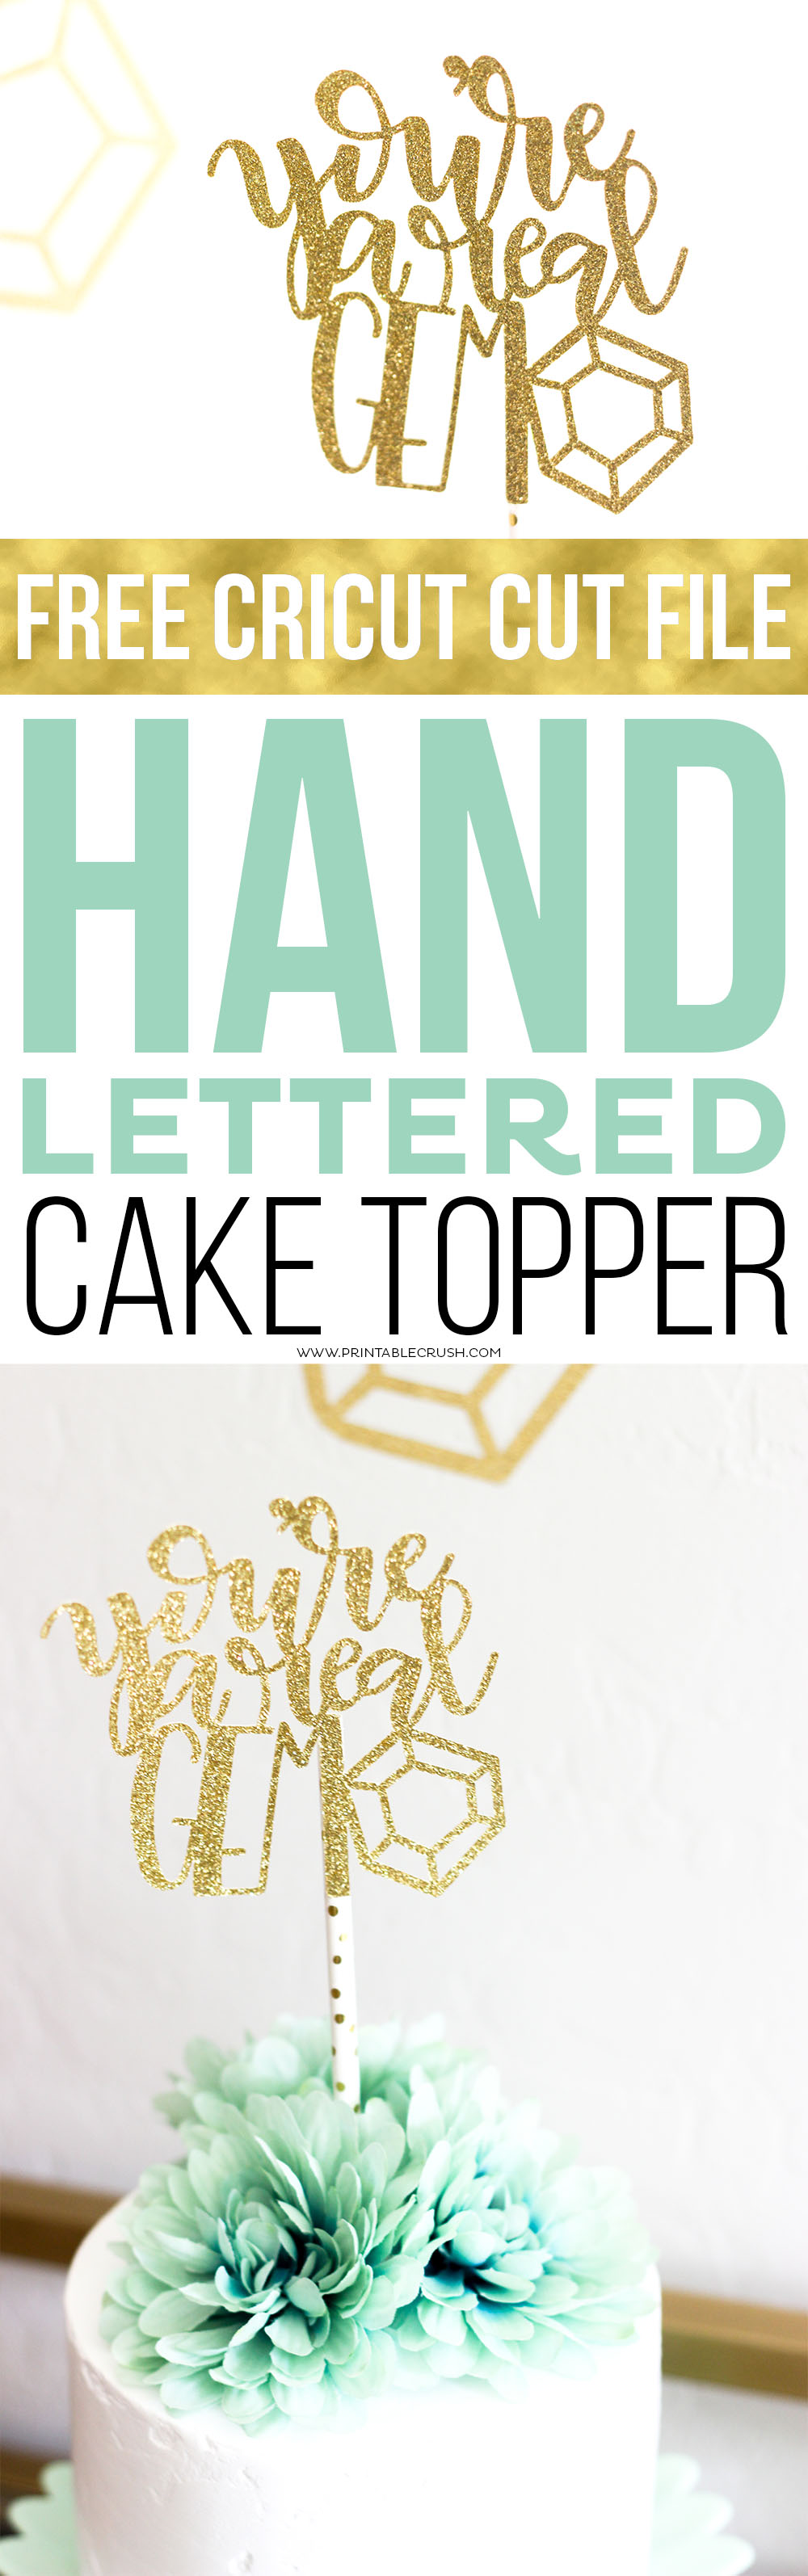 This Hand Lettered Cake Topper is so simple to make for a game night with friends! Make sure you can download the FREE Cricut Cut File!